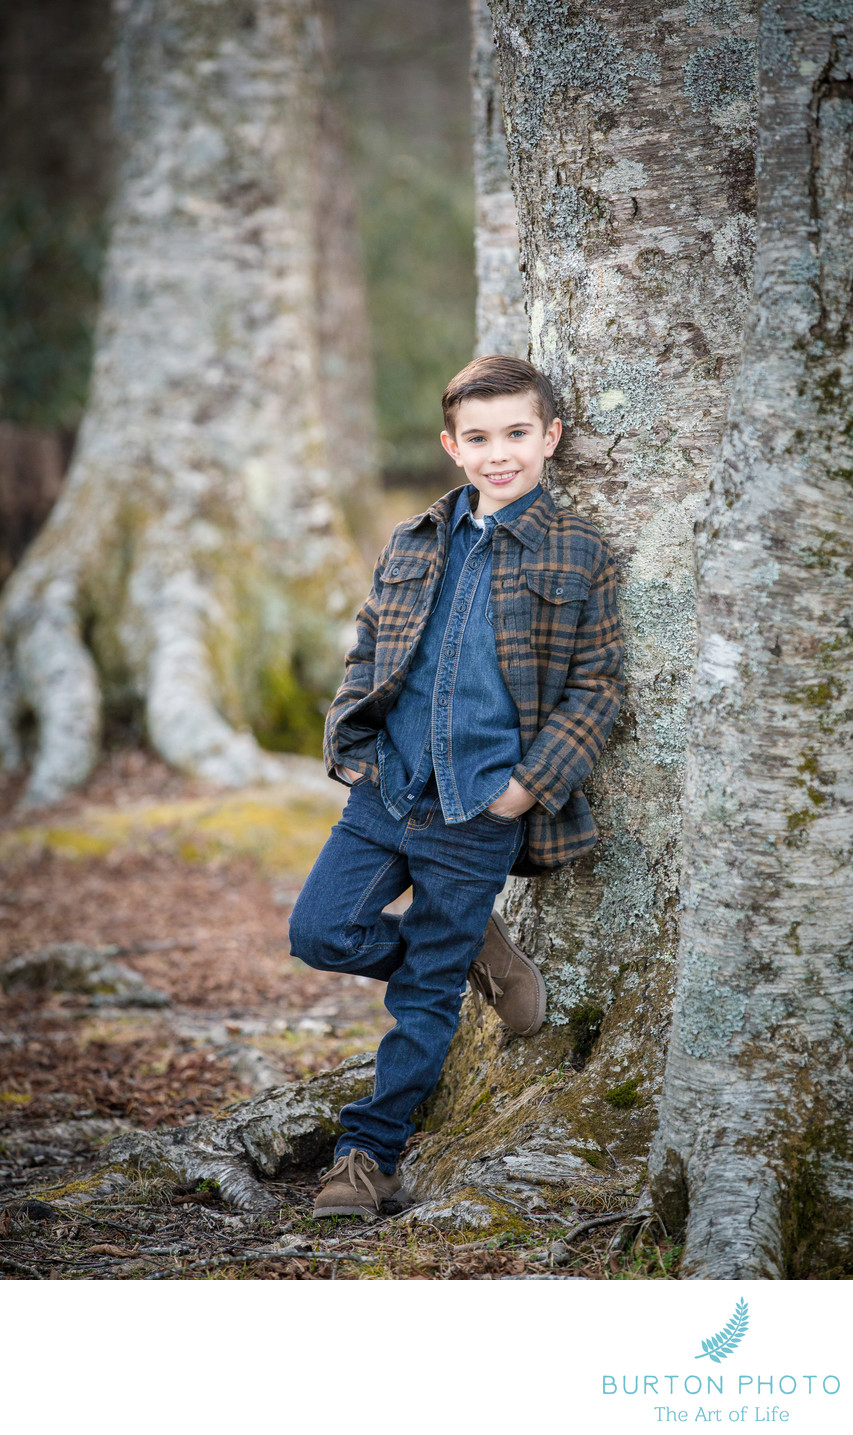 Best Children Photos Blowing Rock